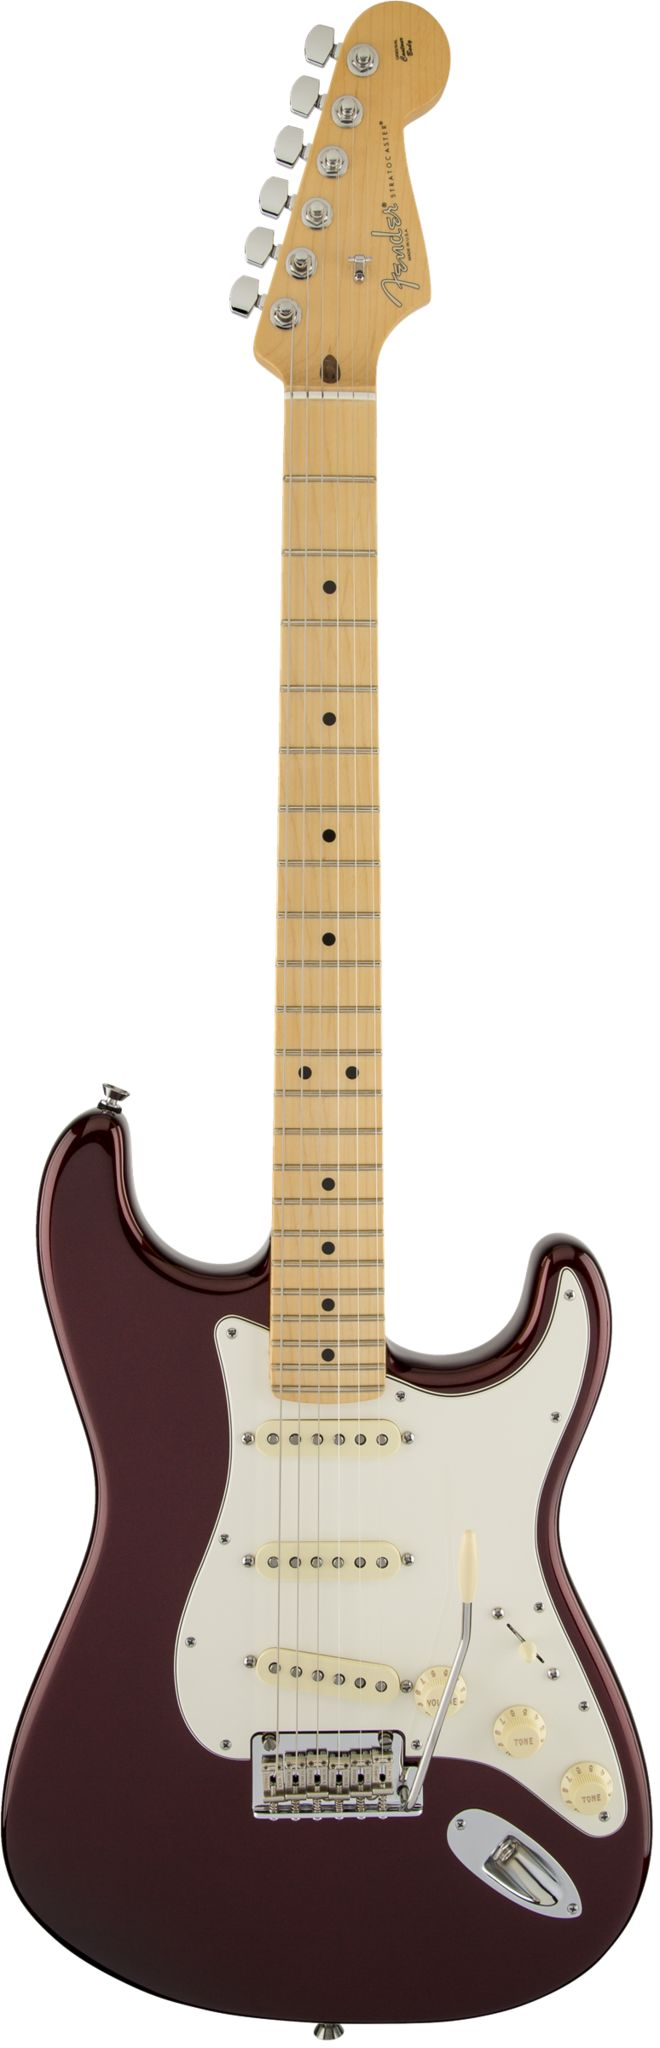 Fender American Standard Stratocaster Electric Guitar Holding true to the classic, the Fender American Standard Stratocaster takes a time honored tradition in electric guitars, and gives it a modern u